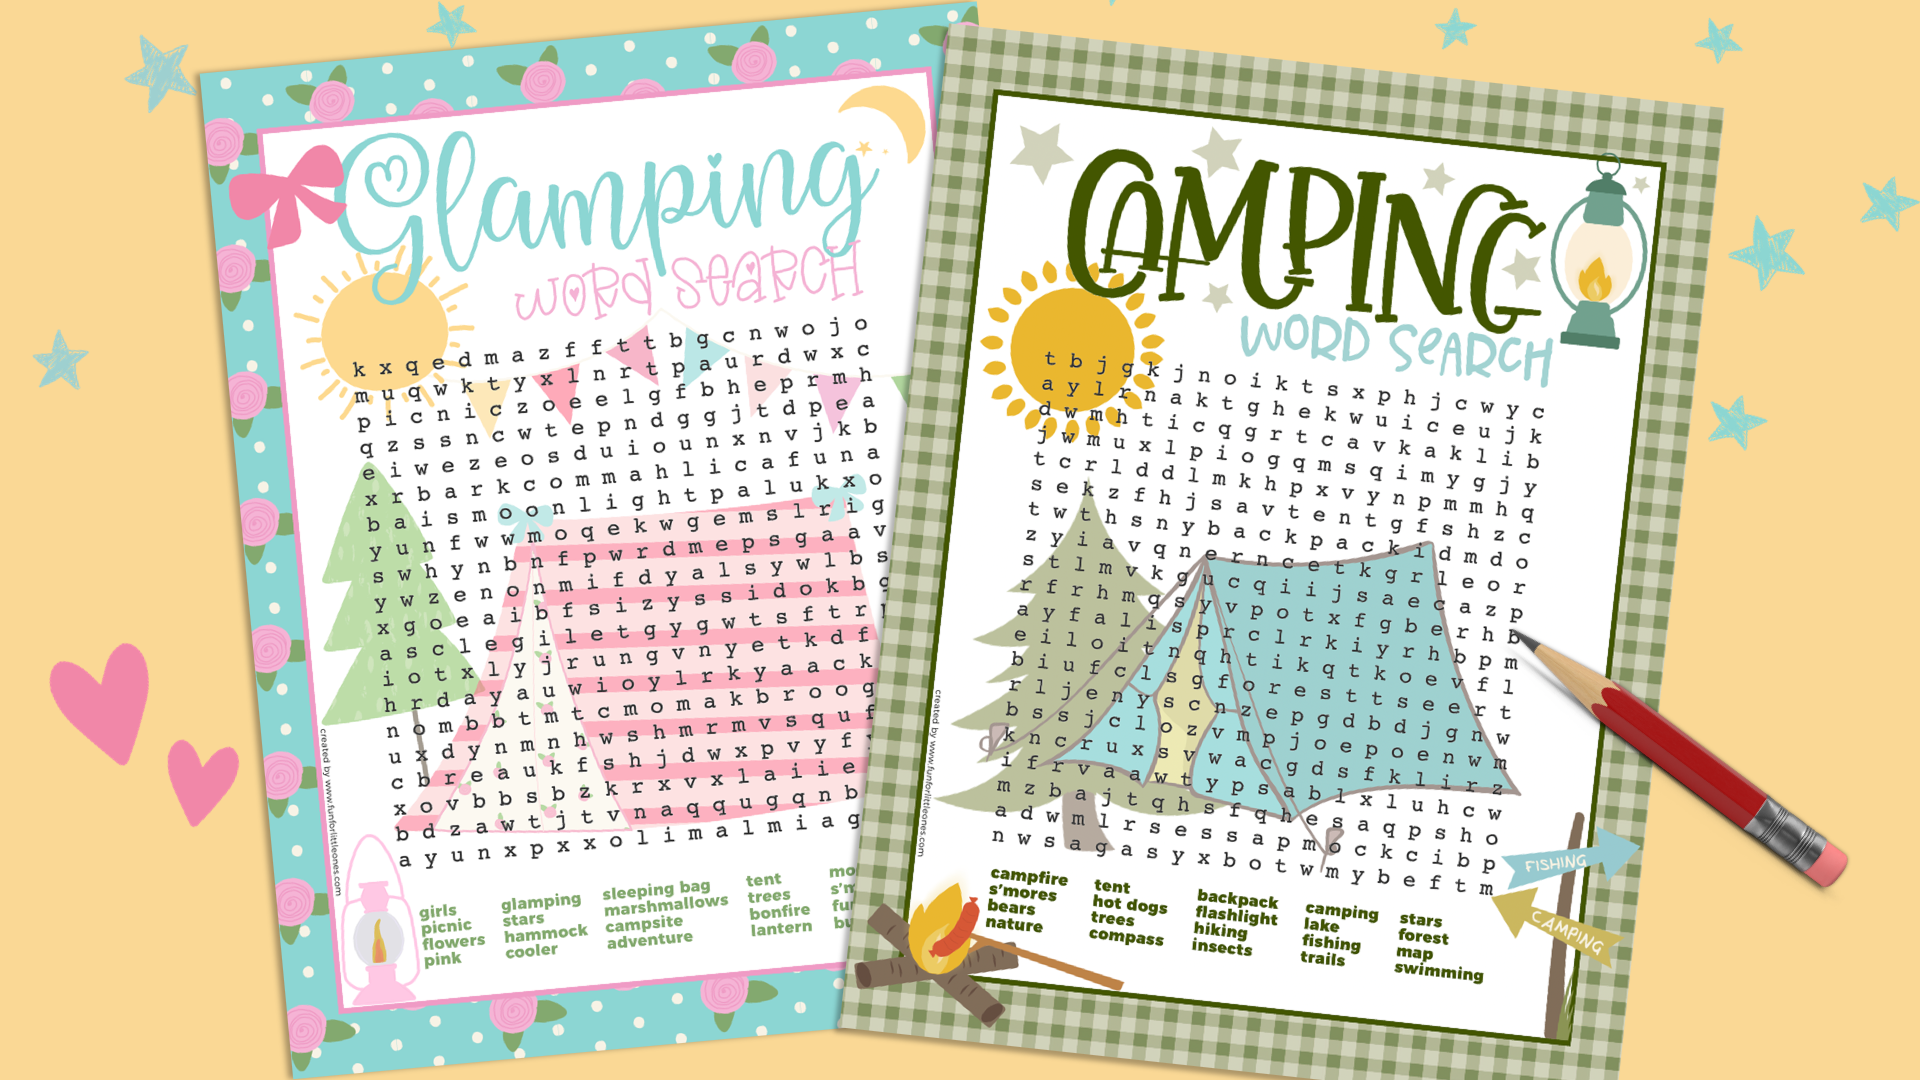 Glamping And Camping Word Search Printables + 17 MORE FREEBIES! 5